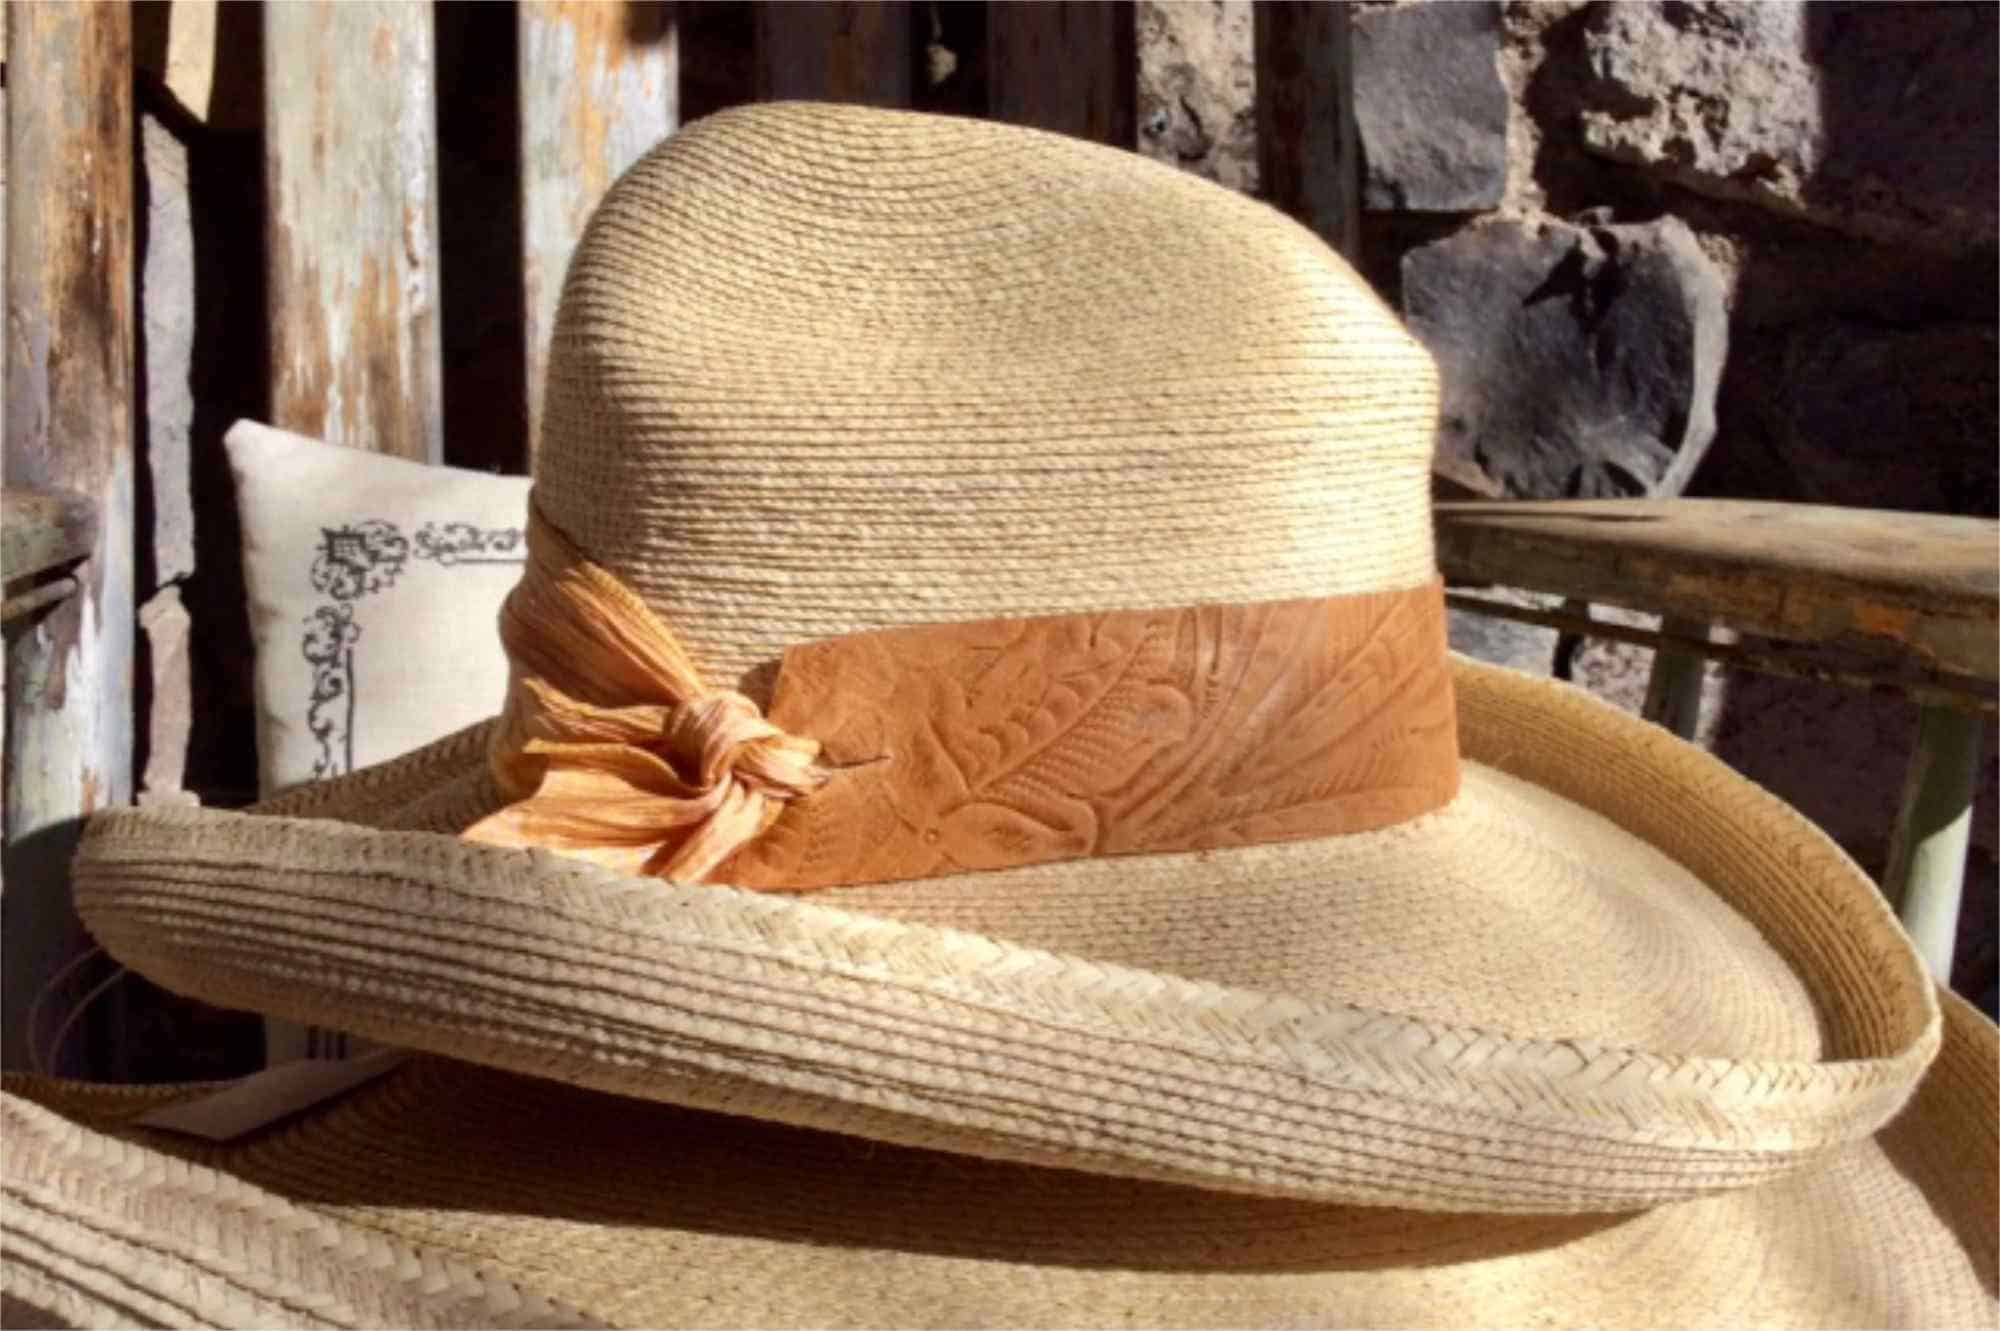 raincatcher hat with tooled leather band by Buffalo Belle Millinery